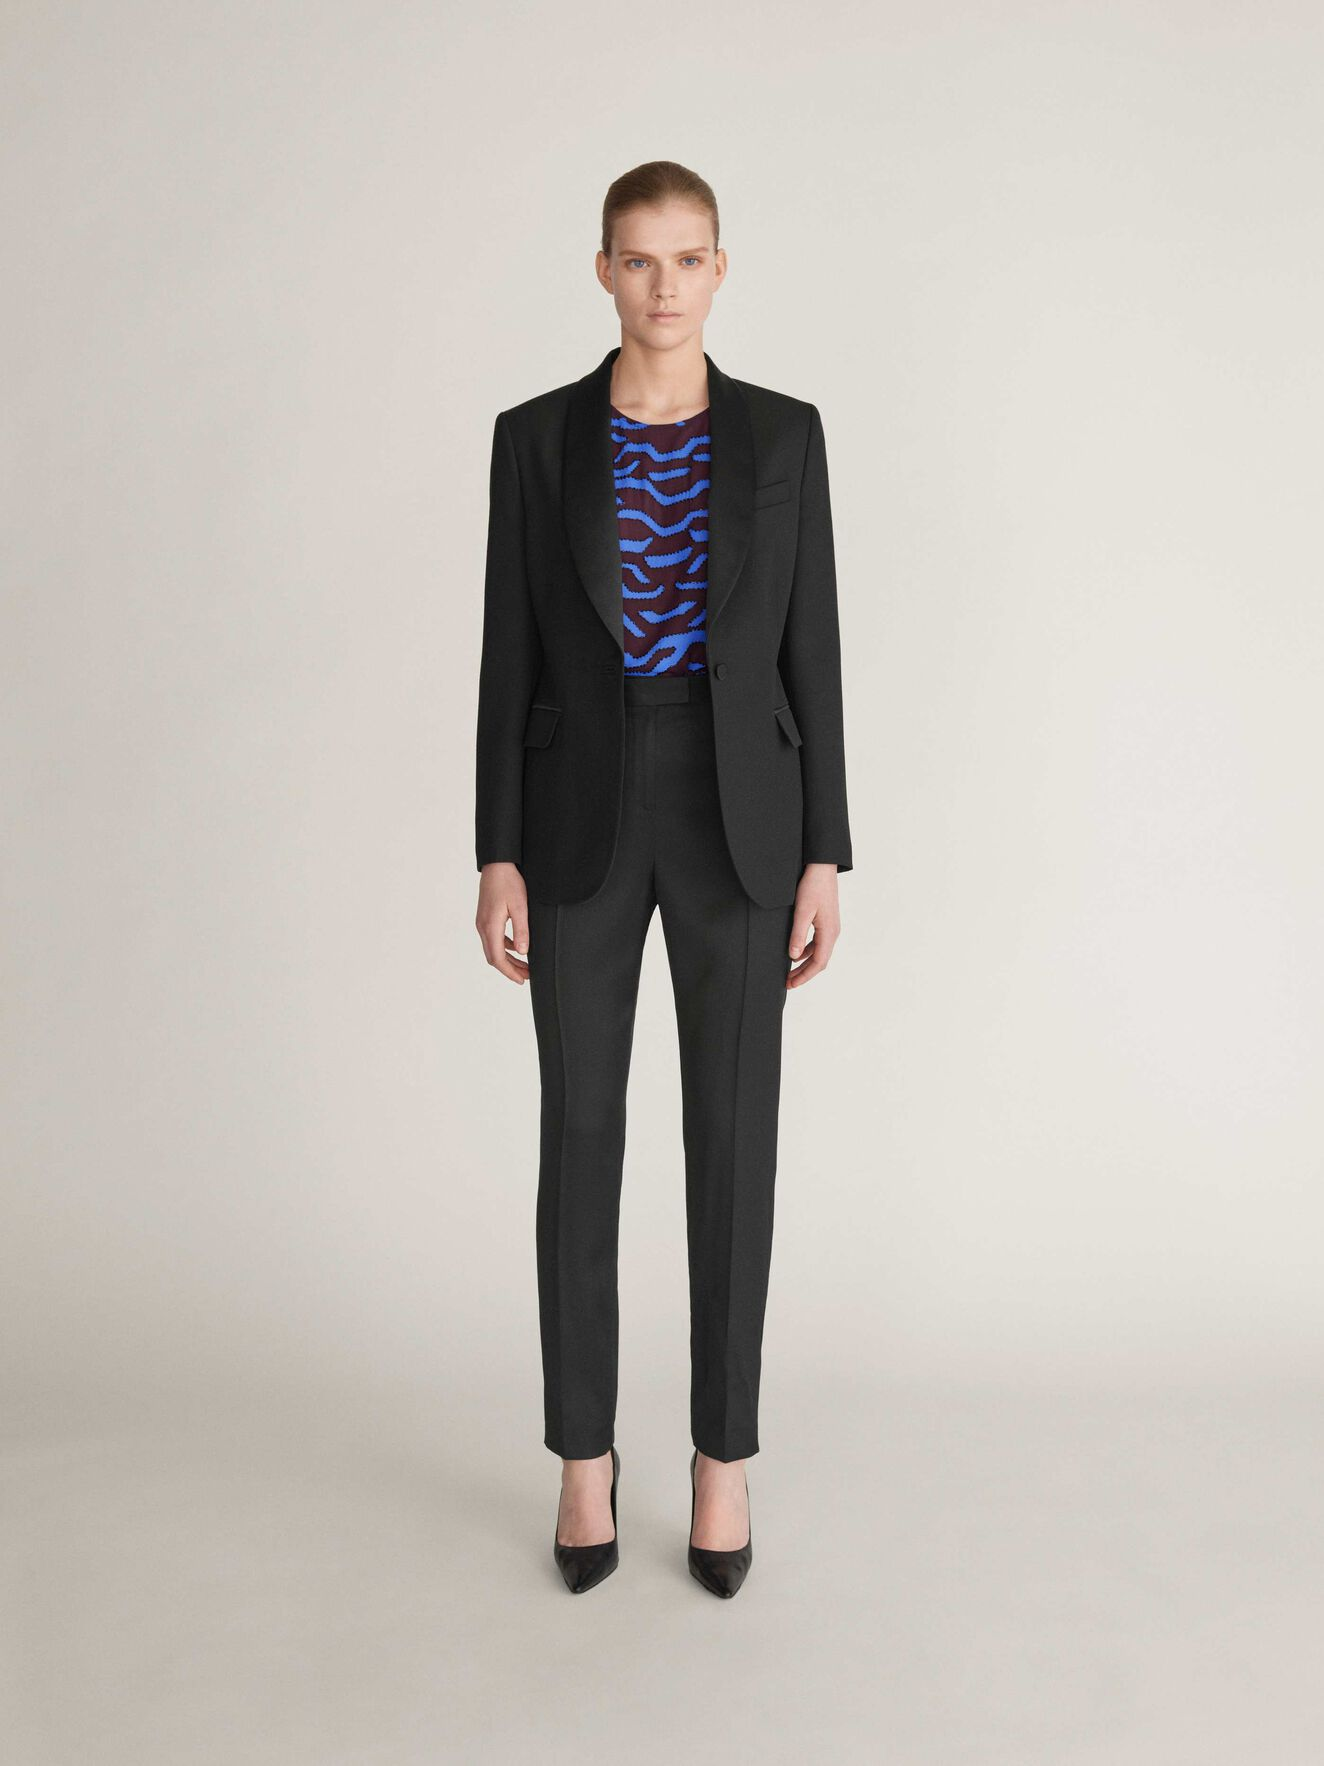 Nektar Blazer in Midnight Black from Tiger of Sweden